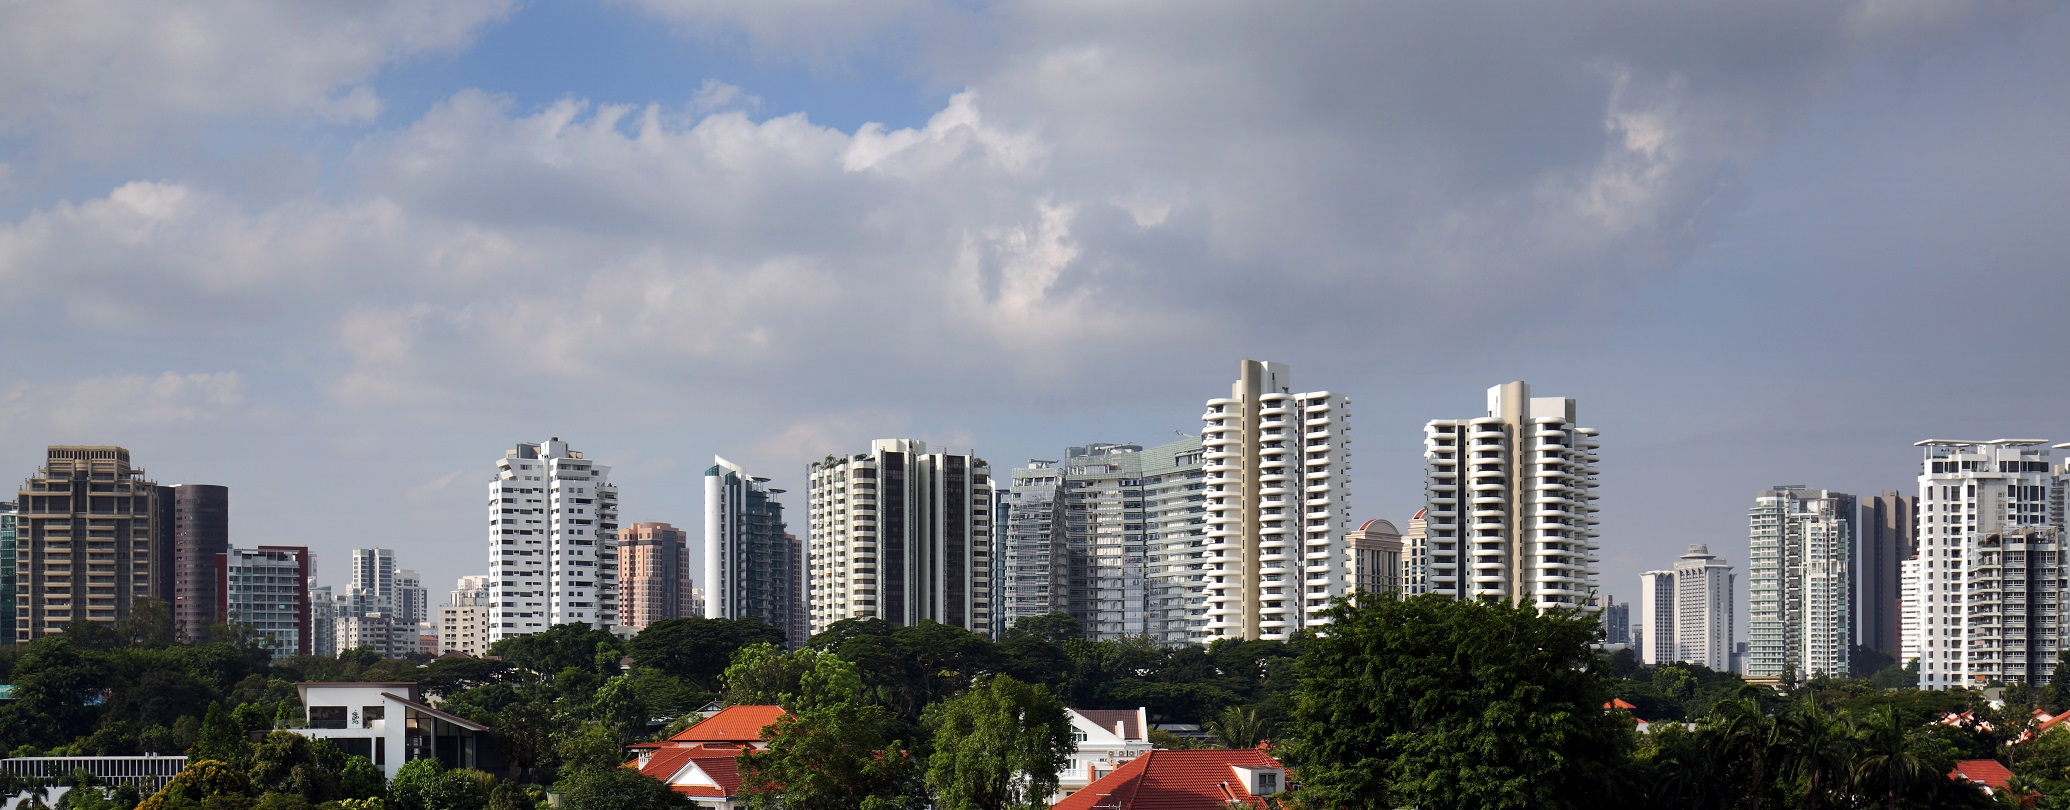 Residential listings continued to account for the lion's share of total auction listings in 2019 (Photo: Samuel Isaac Chua/EdgeProp Singapore) - EDGEPROP SINGAPORE